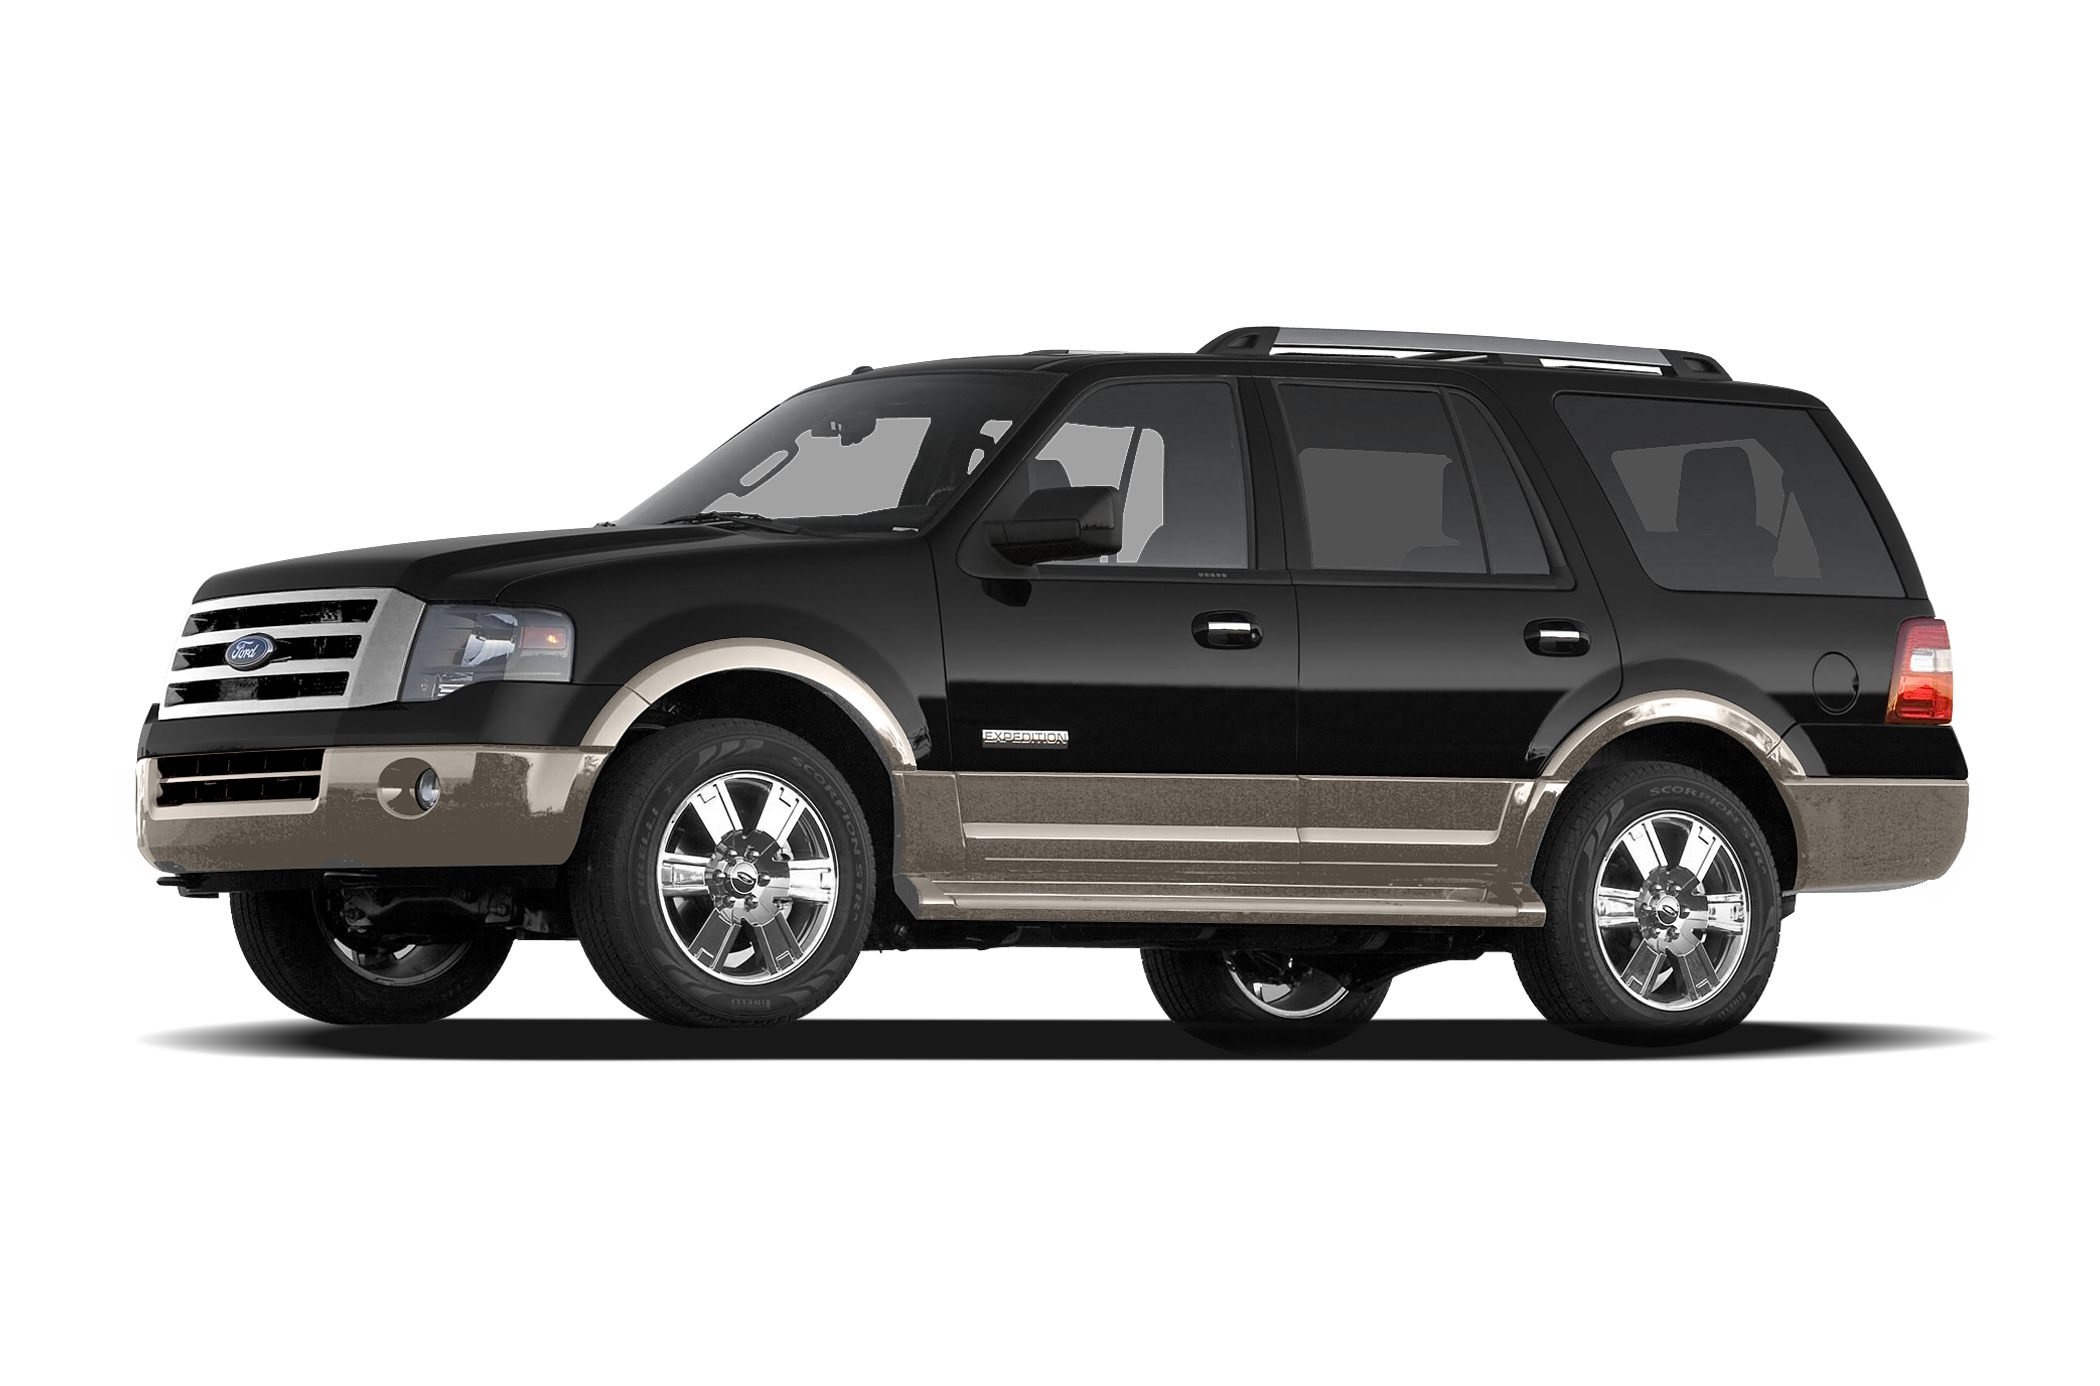 CAB80FOS301C0101 Cool Review About 2000 ford Expedition Mpg